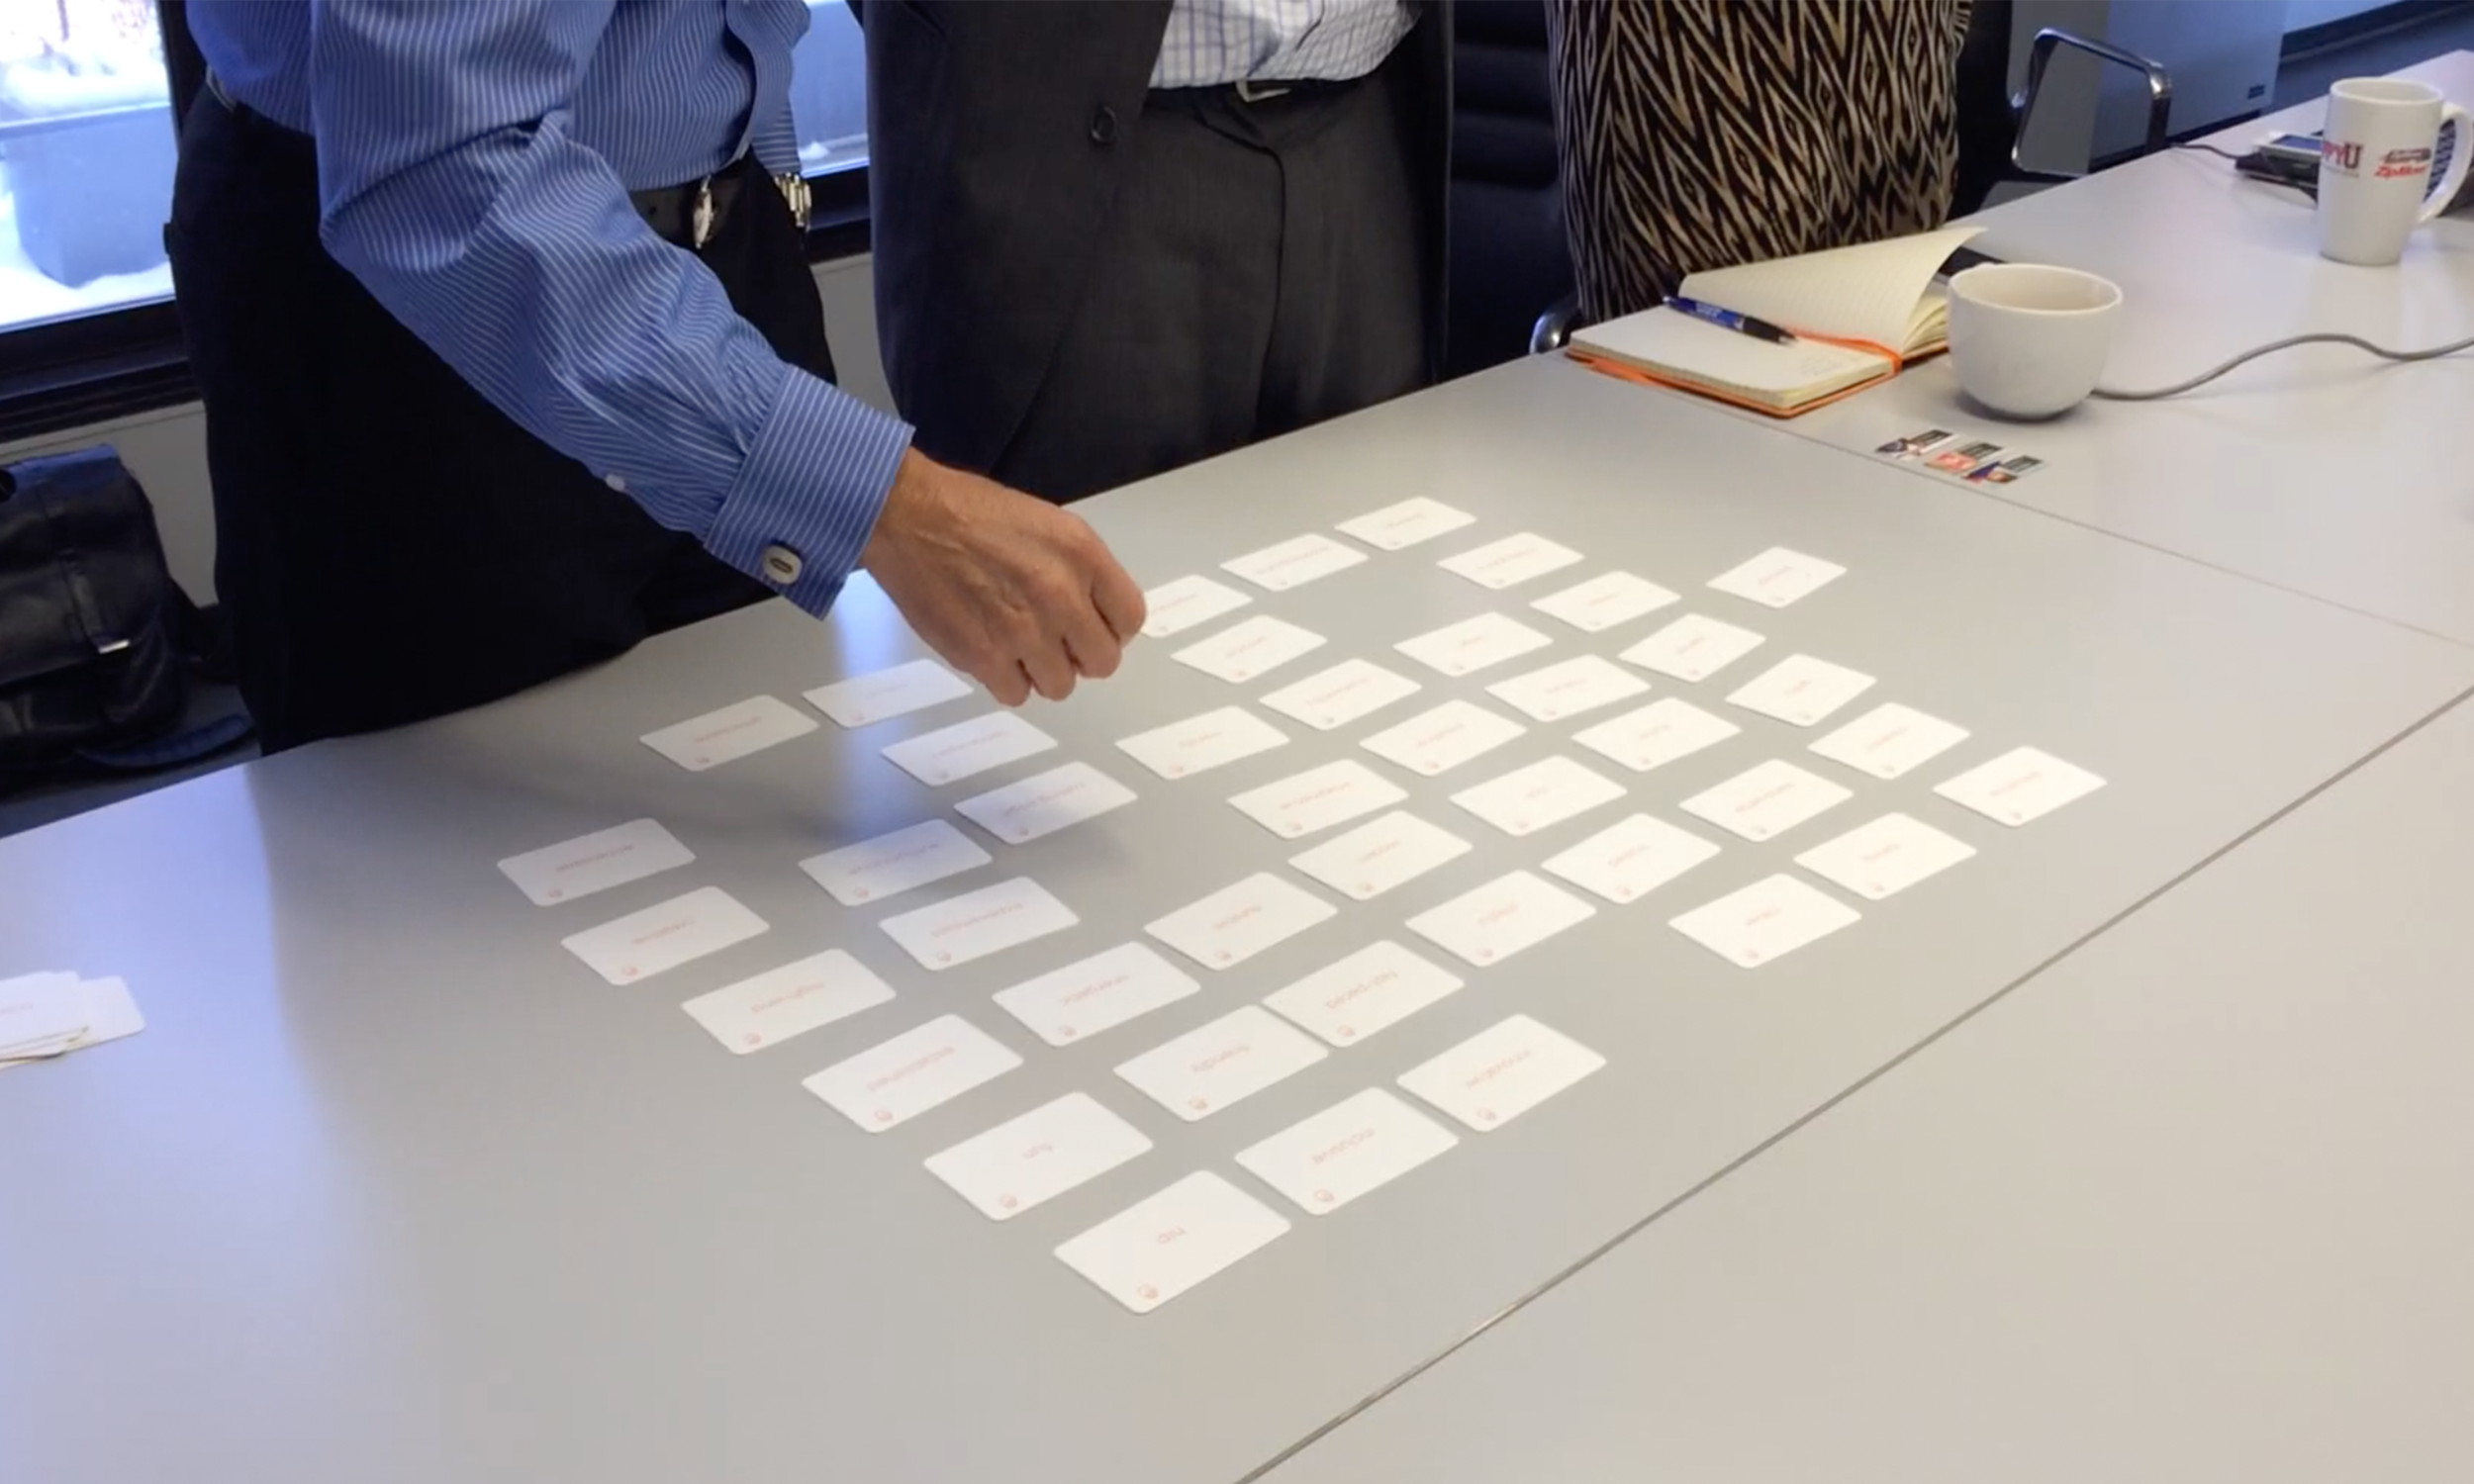 Brand card sorting exercises with CEO, CMO, Marketing Director and team.